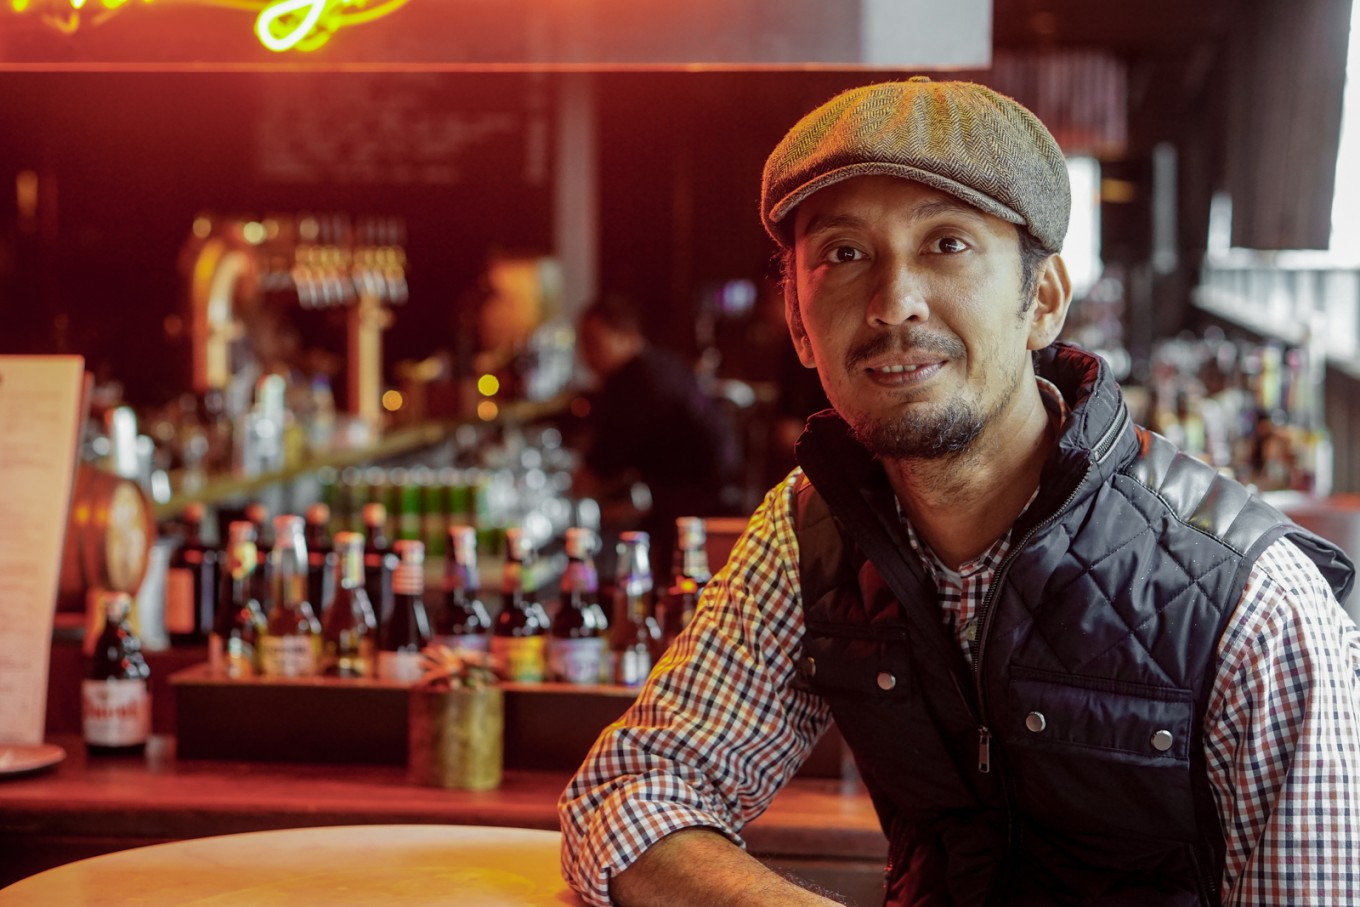 Mixologist Kika Moka for The Dutch: As a well-known figure behind the bar in Jakarta, Kiki Moka has never lost his thirst to find more ideas for creating cocktails. He says that the scene in Indonesia is progressing, albeit slowly, to catch up with those in other countries. Local mix masters are starting to explore flavors by combining ingredients based on international to local produce, and to try many different methods to create something different for the palate.